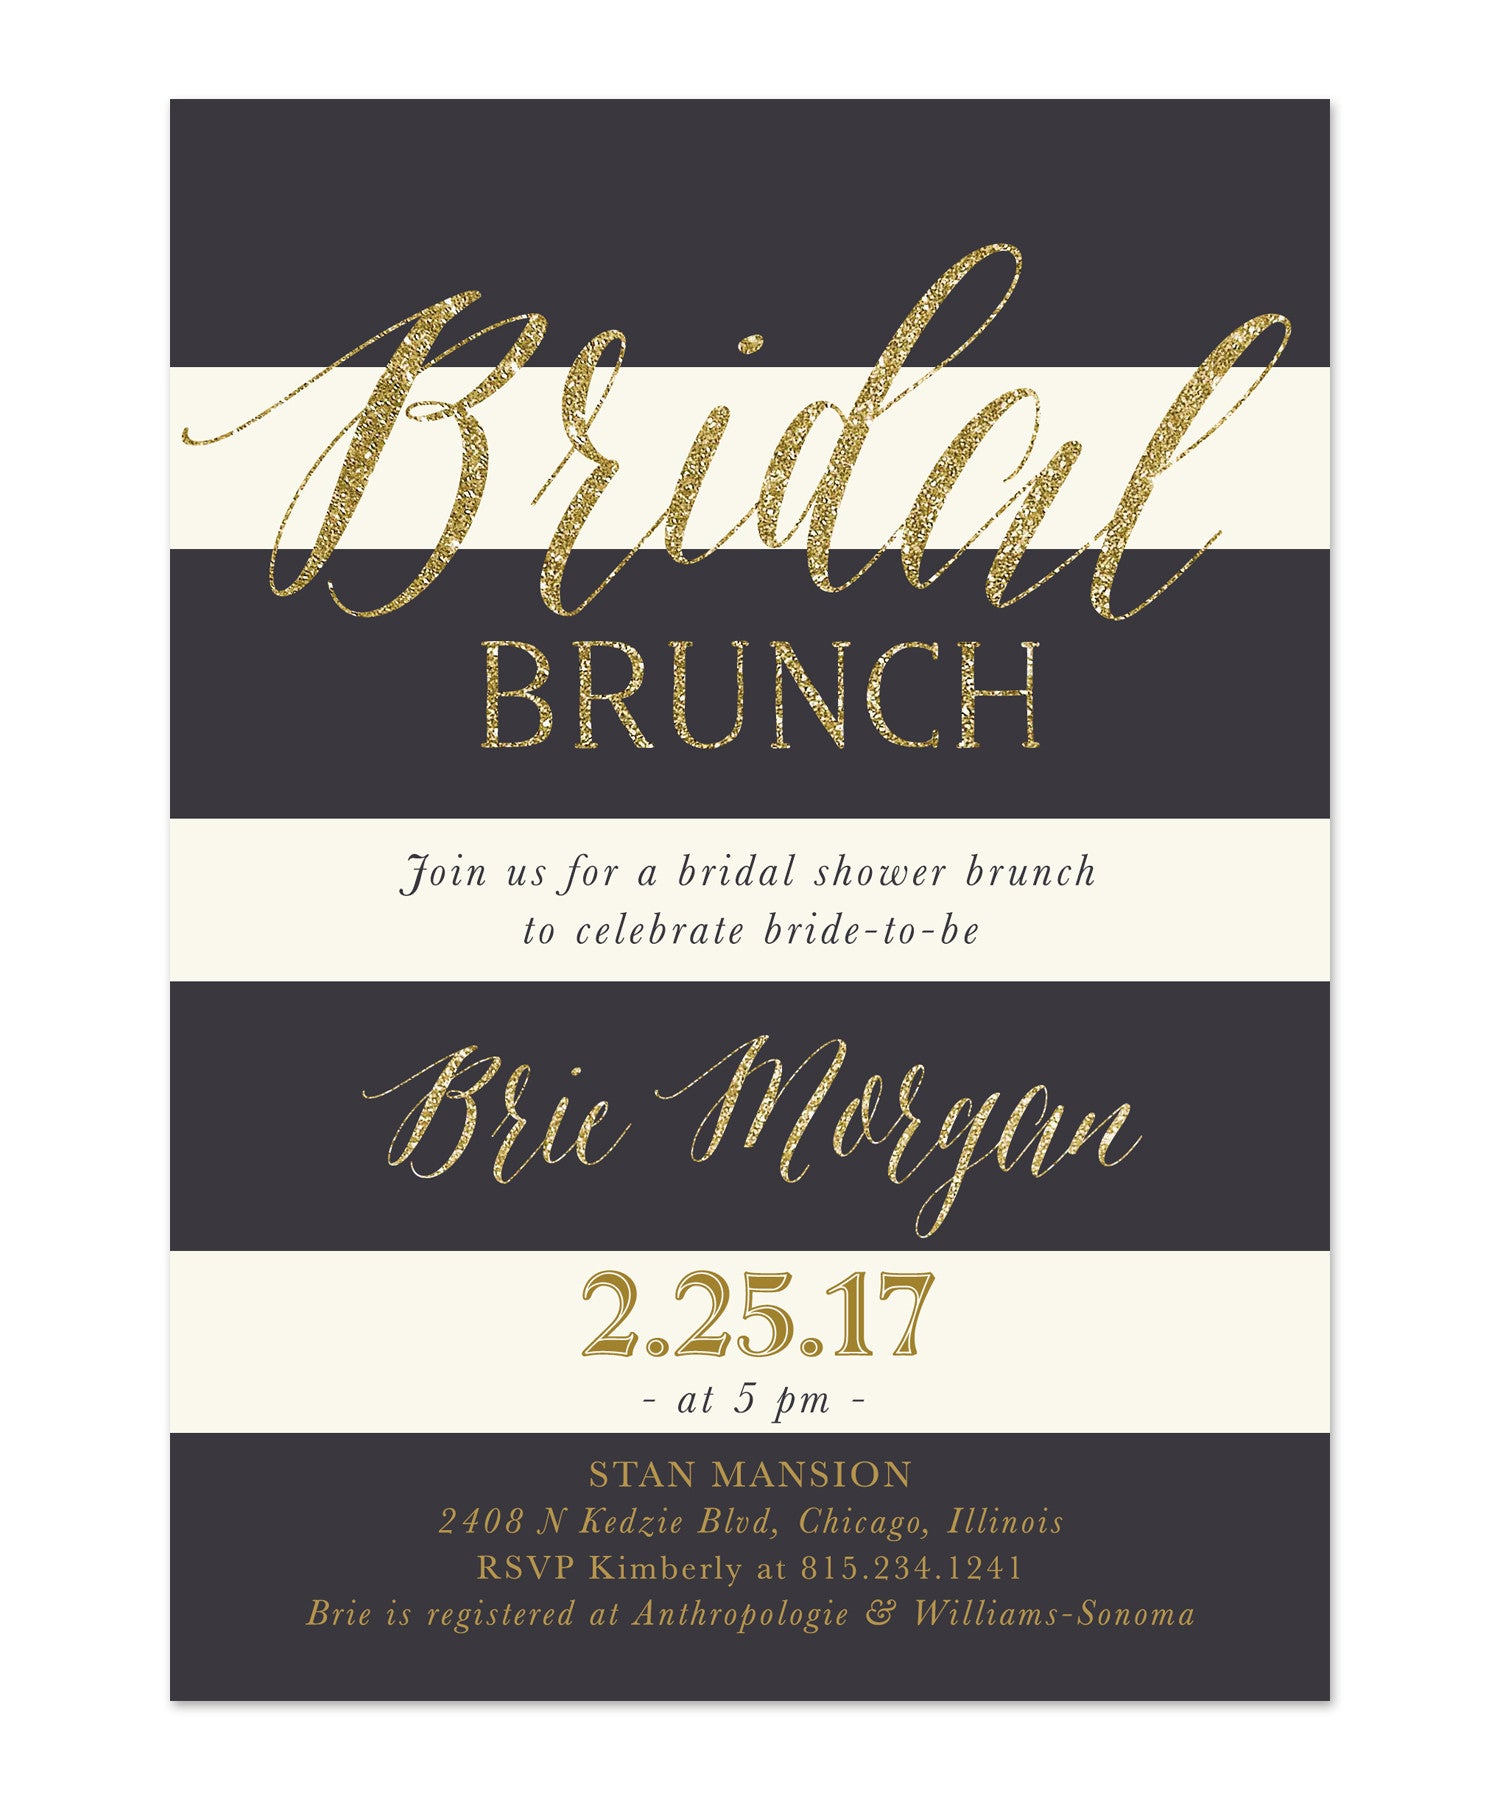 Brie Bridal Shower Brunch Invitation Blush Pink Roses Grey Gold